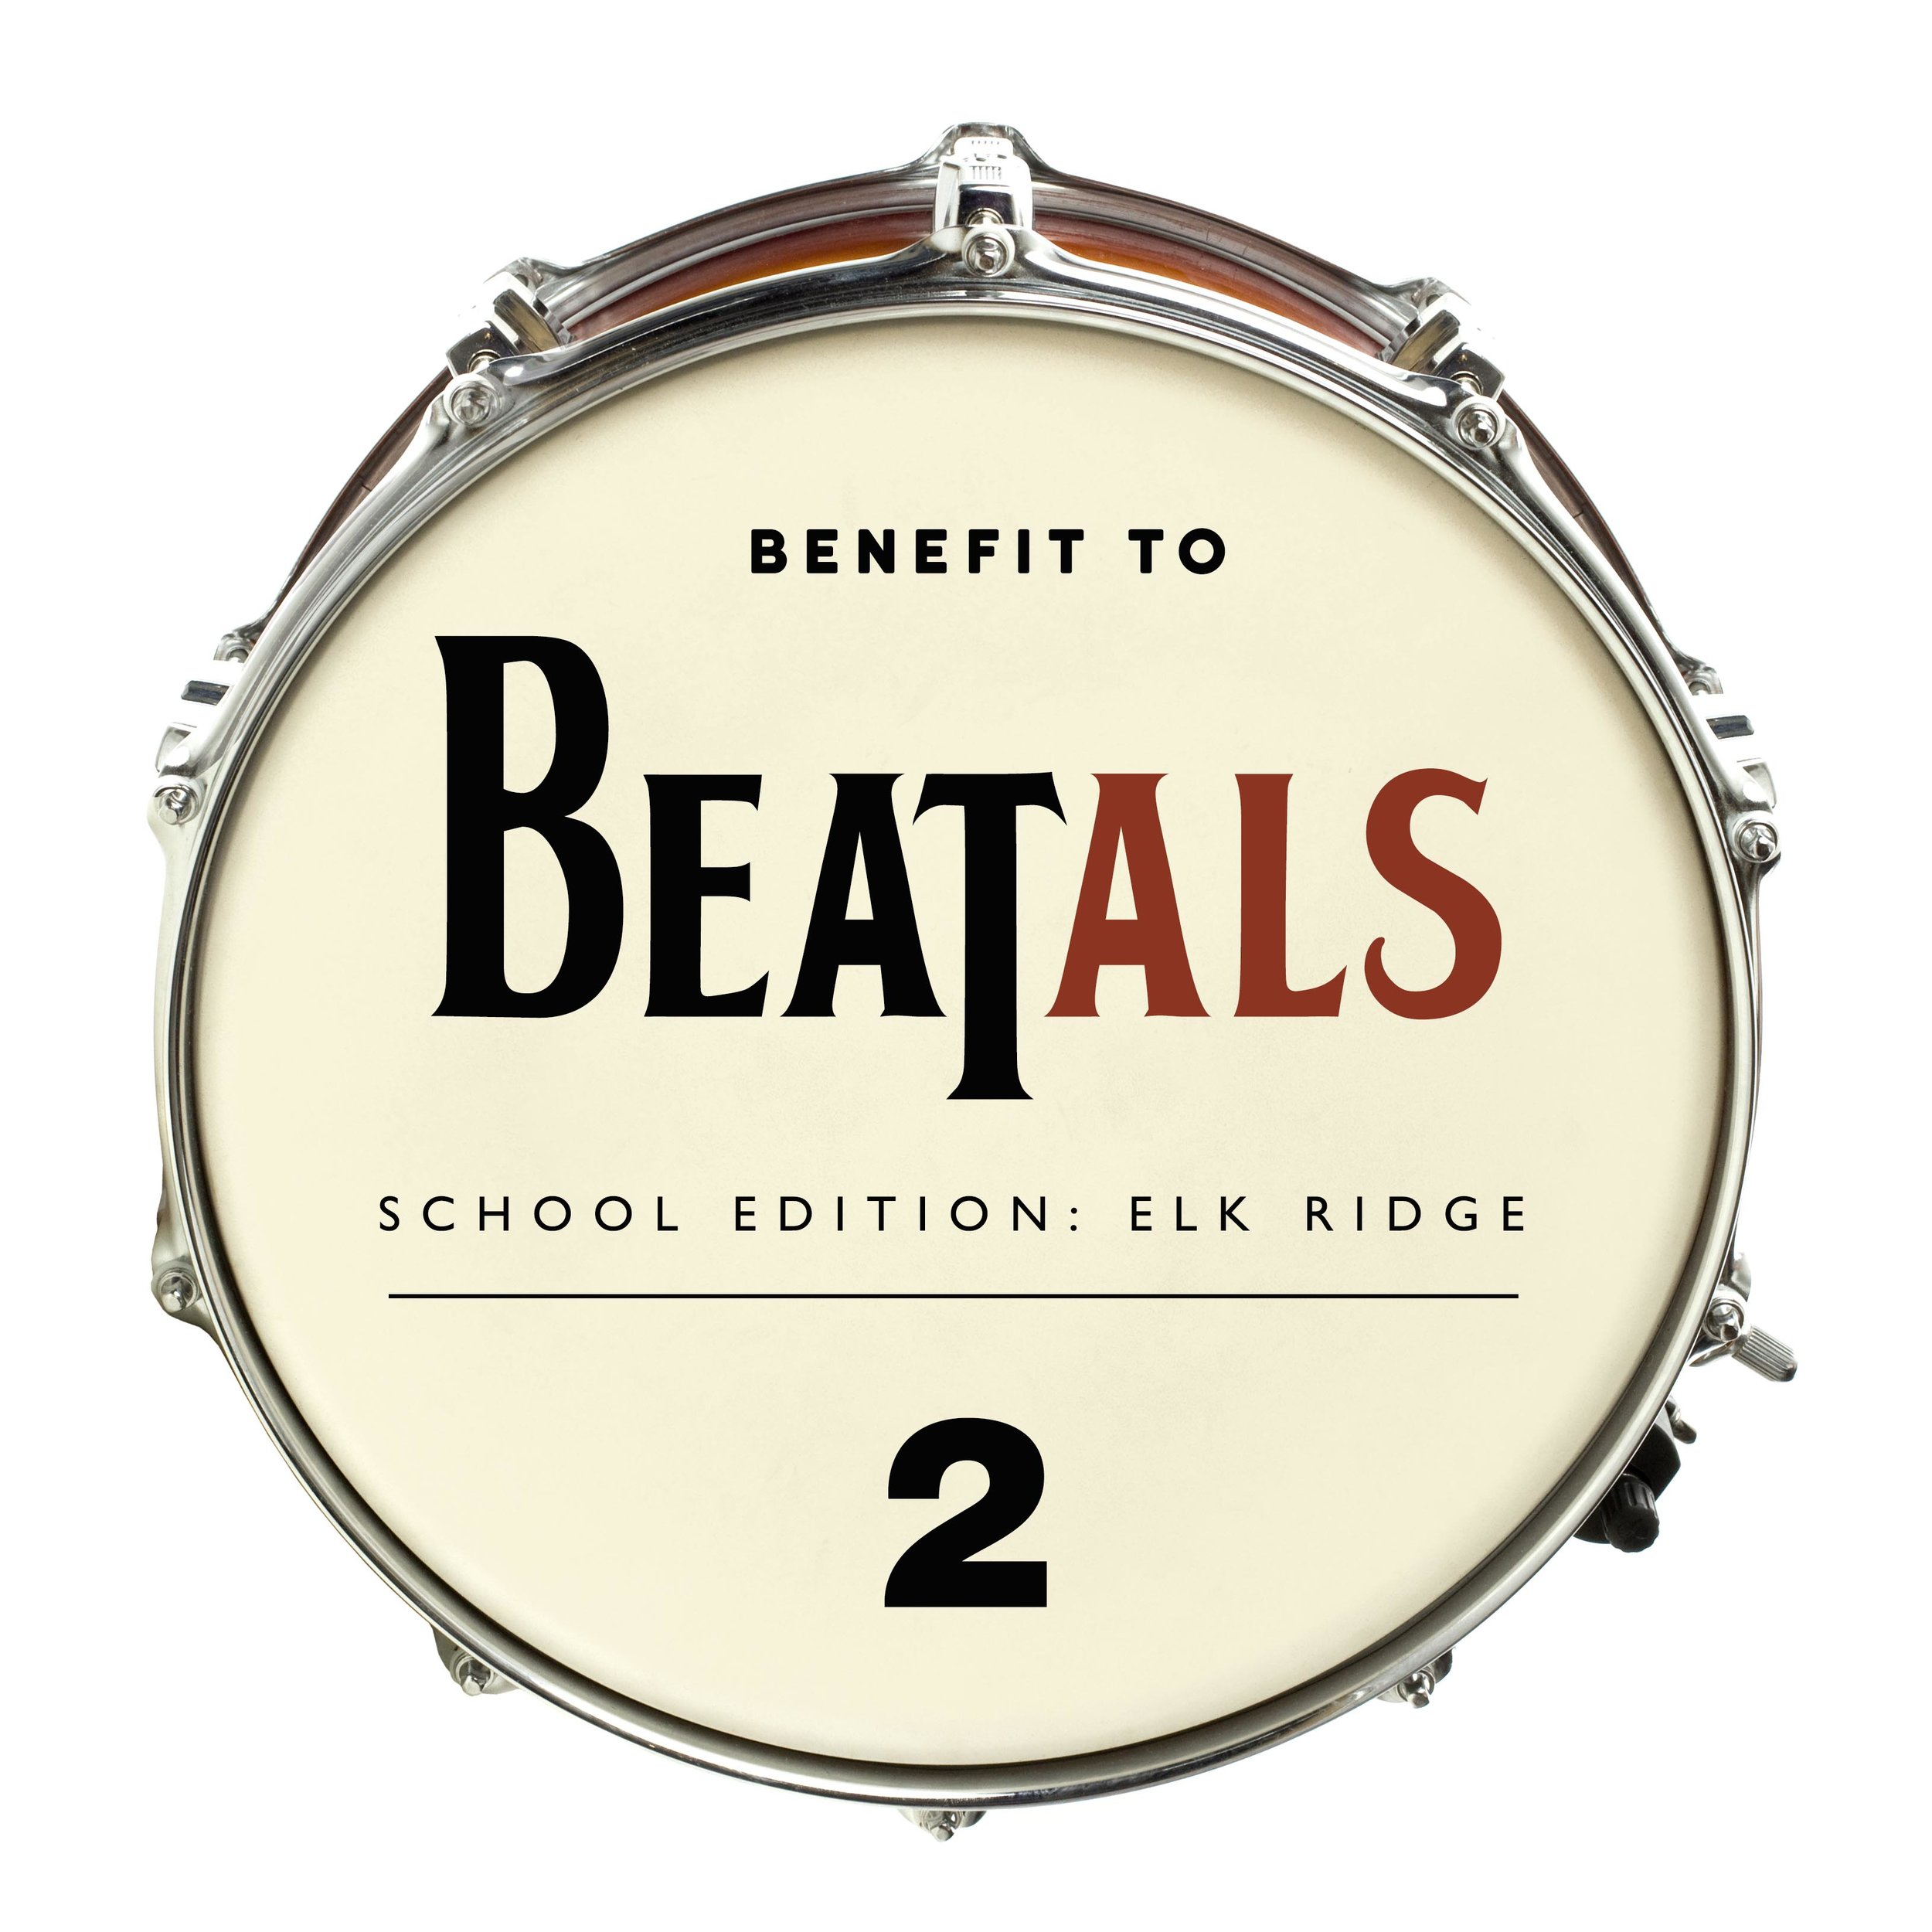 BeatALS base drum.jpg